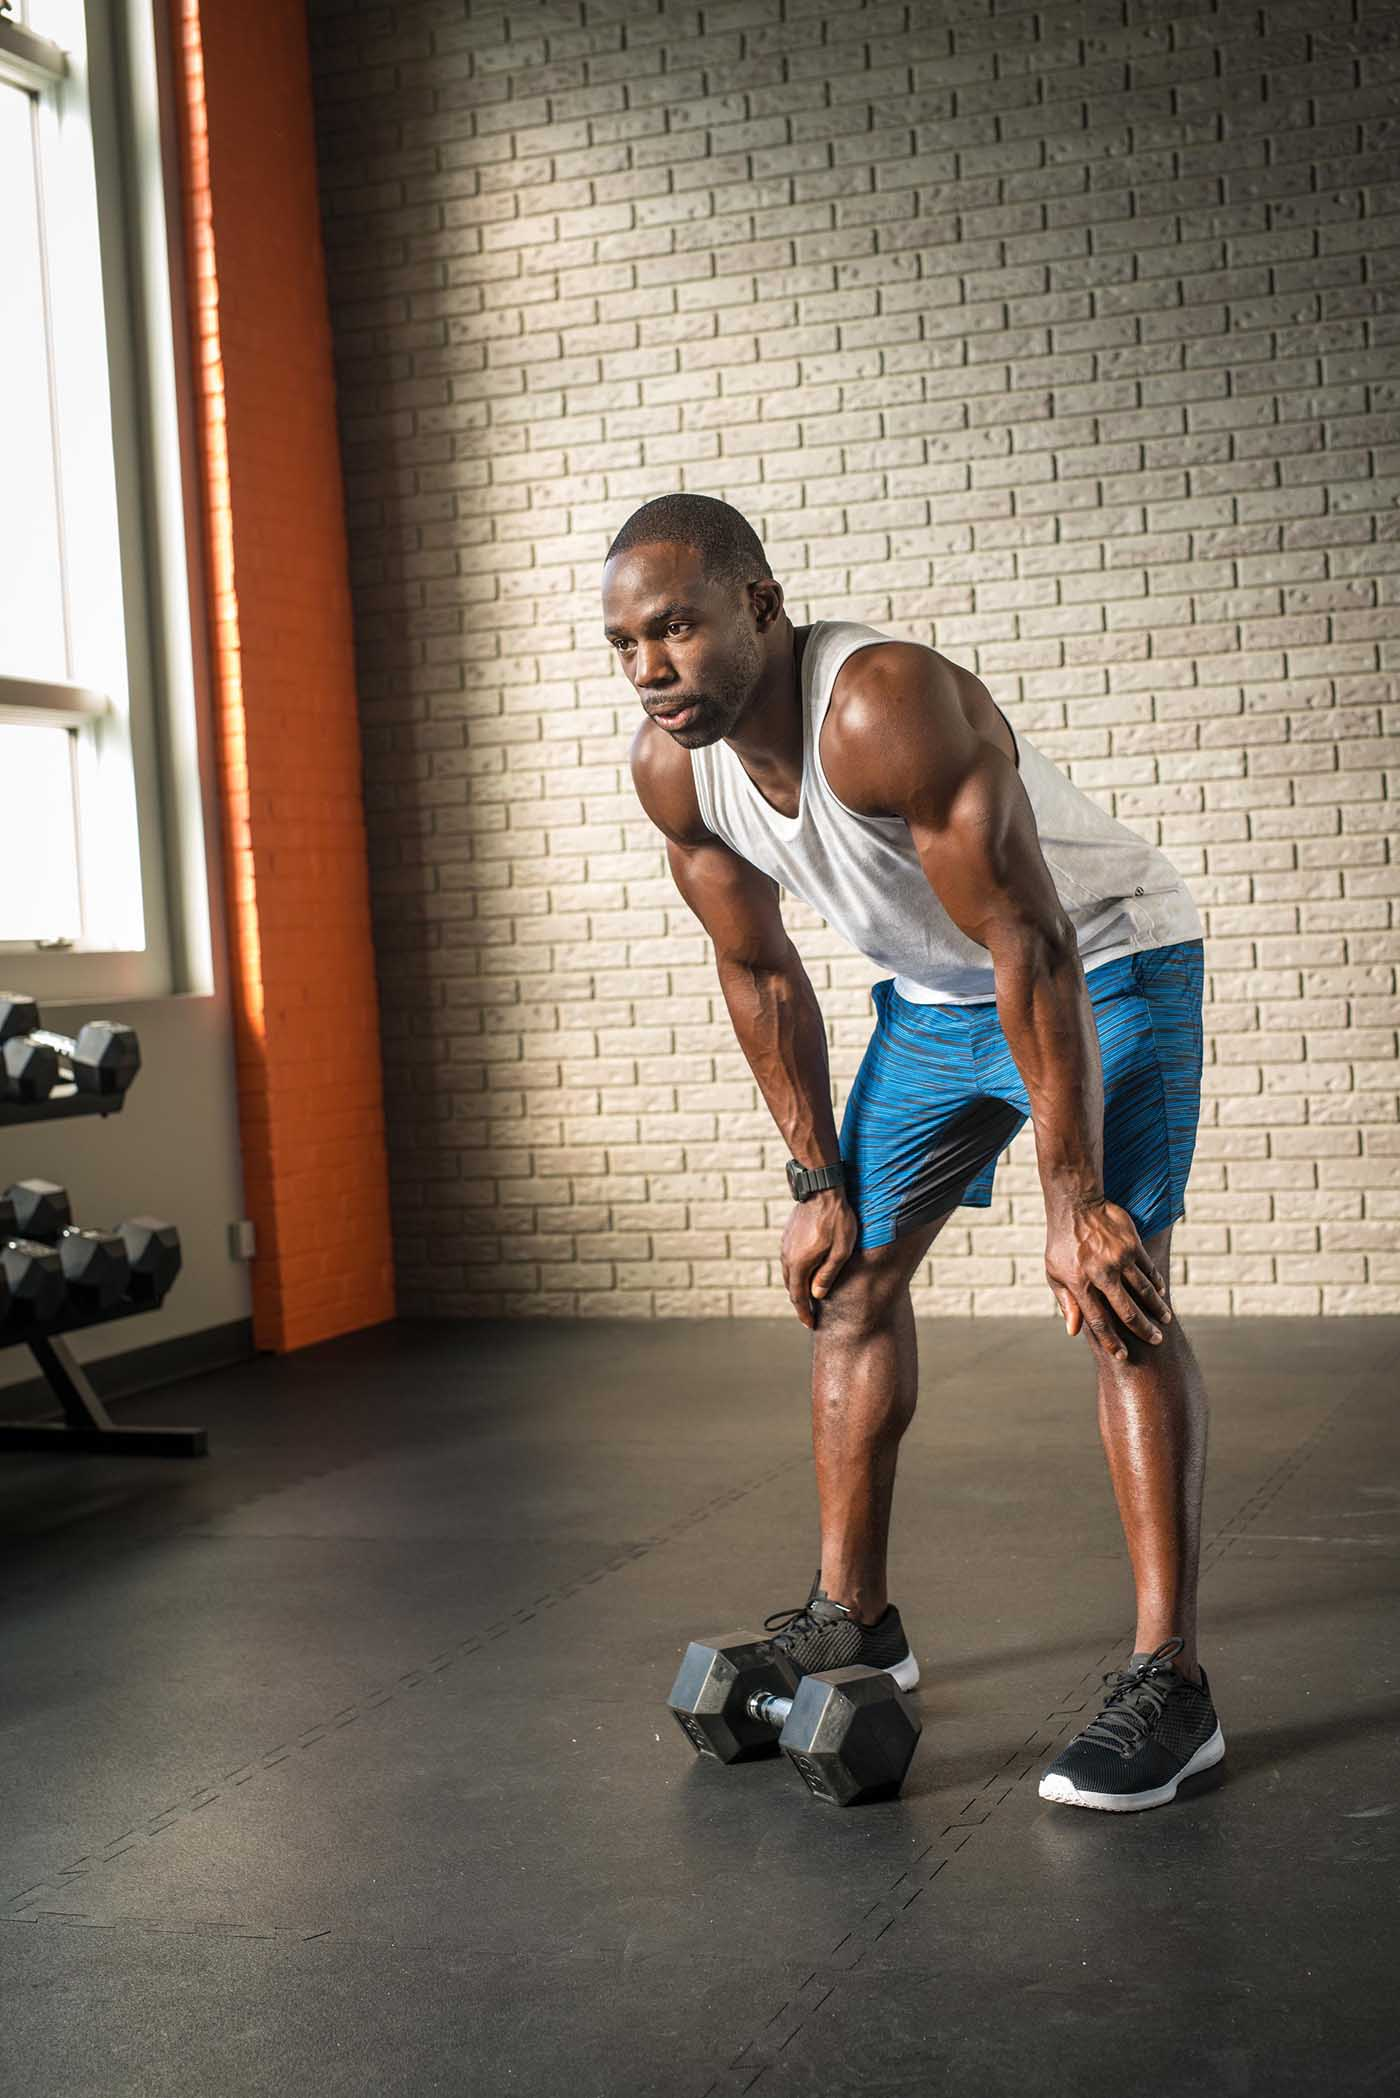 Men's Health Speed Shred 2, MetaShred, Studio, Workout, Gideon Akande, Wimdow, Dumbbells, Brick Wall